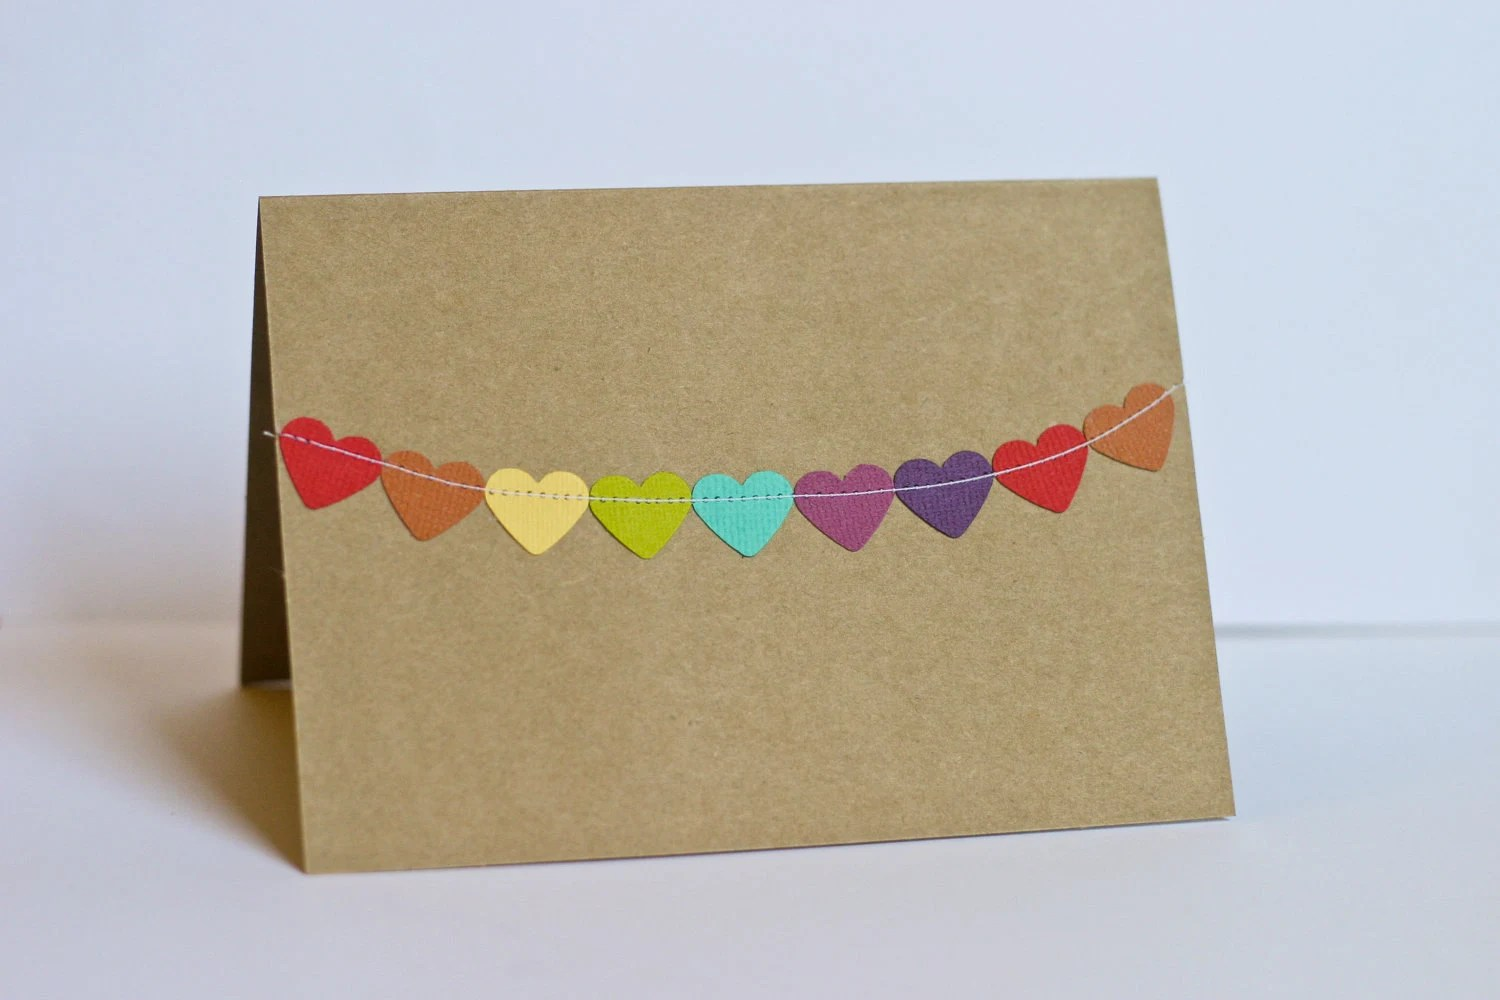 Valentines Cards Heart Bunting Flag Stationery - RainyDayColors